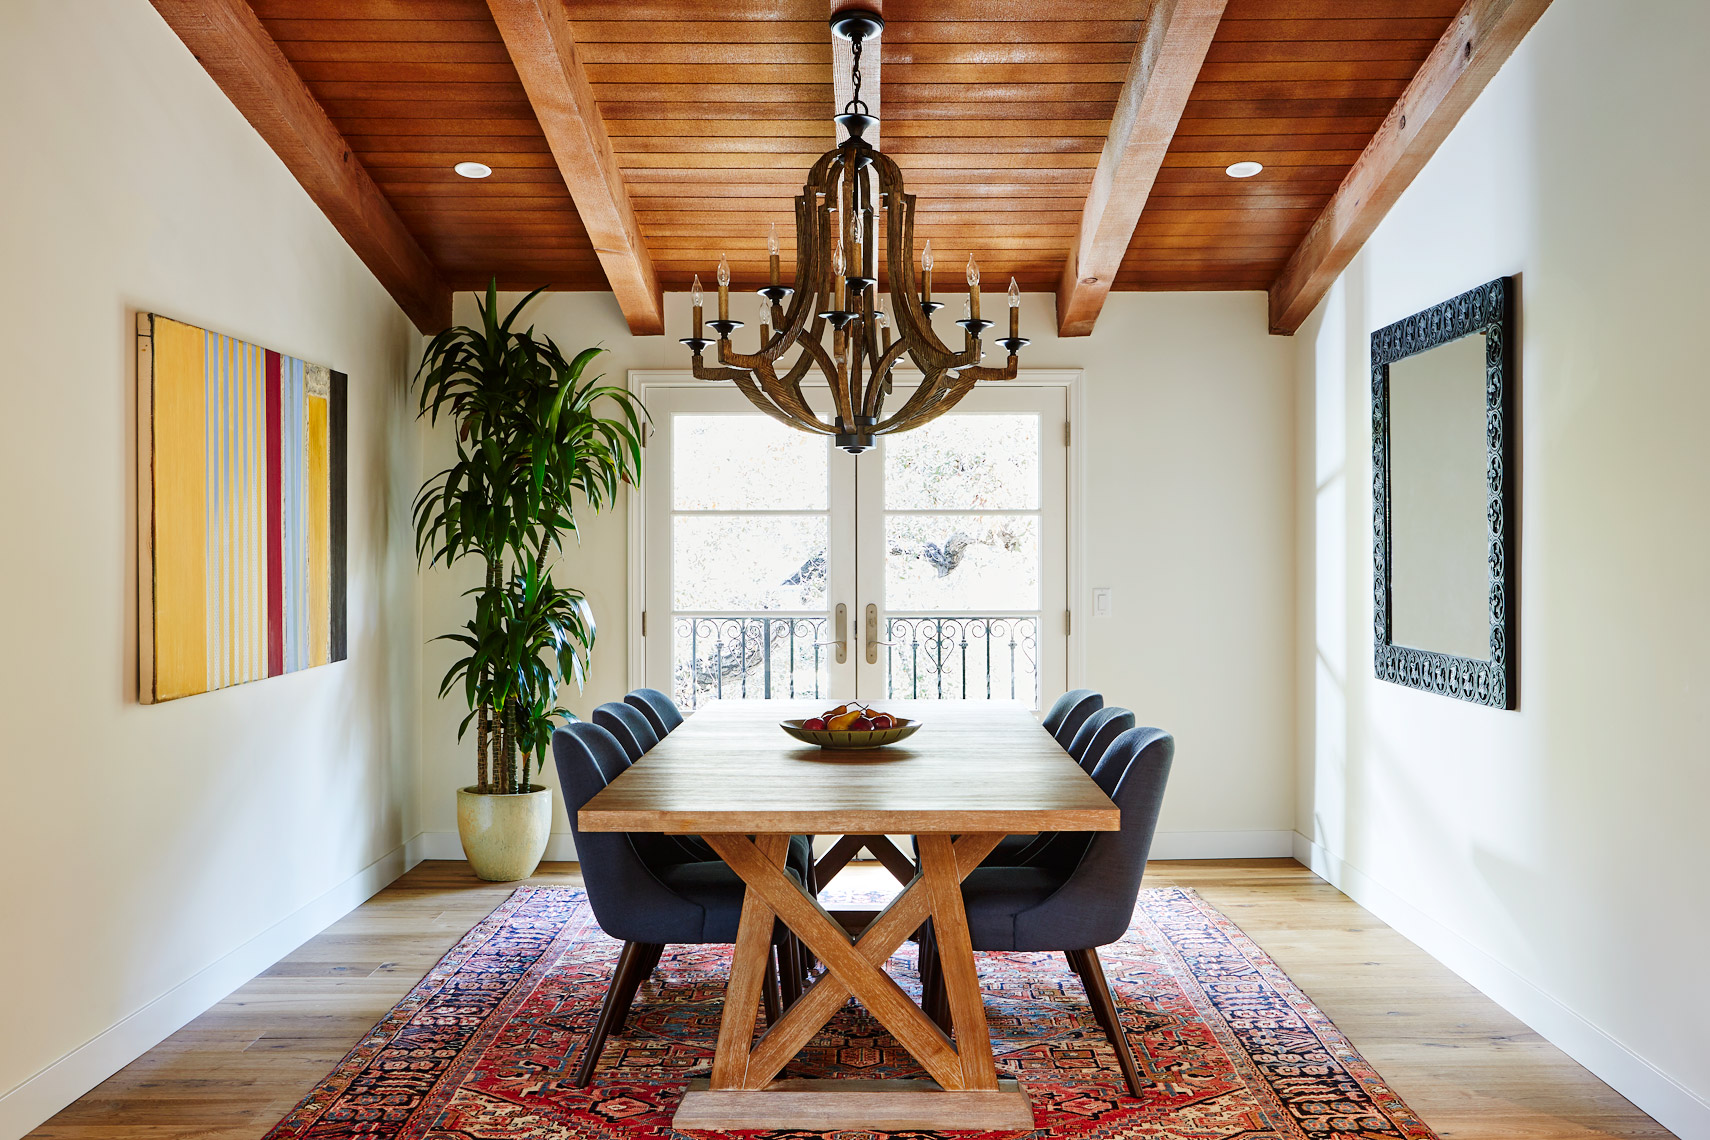 Lily_Spindle_Pasadena_Dining_Room_1_076